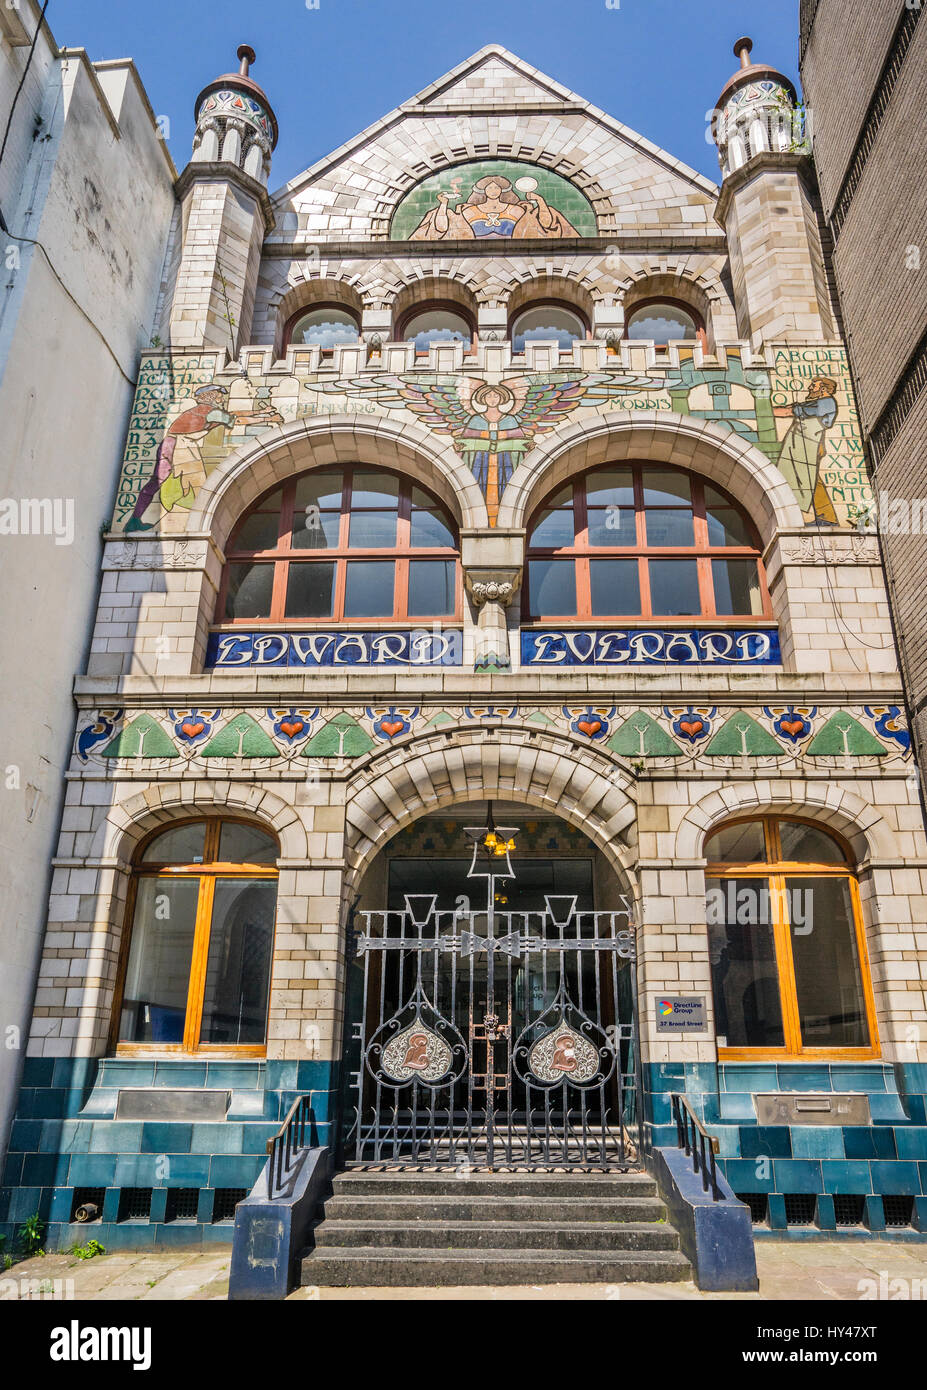 United Kingdom, South West England, Bristol, exhuberant faience frontage of the Edward Everard Building in Broad - Stock Image